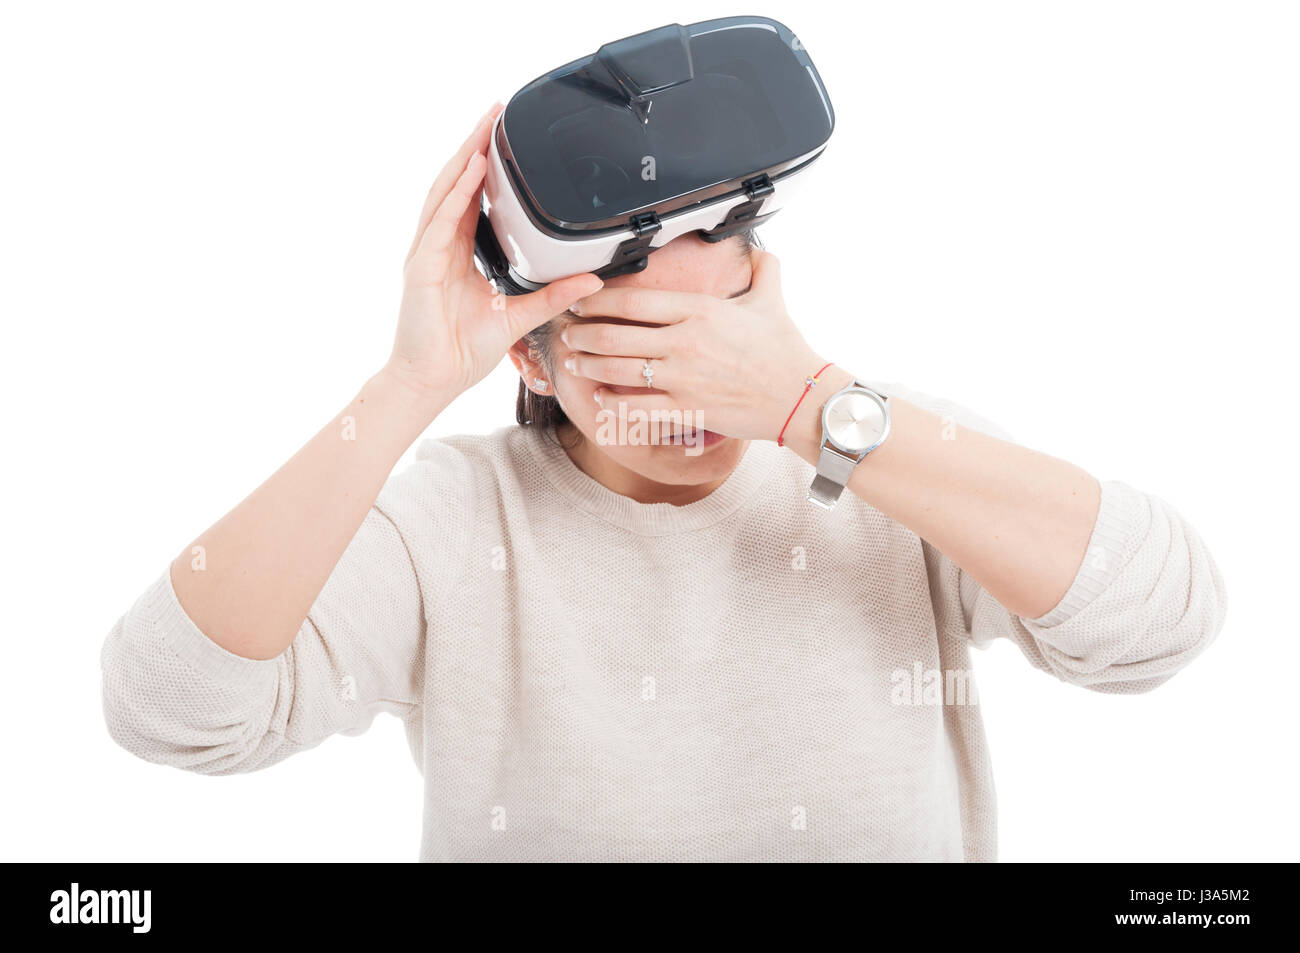 Woman with migraine because intense experince in virtual world with 3d glasses on white background - Stock Image